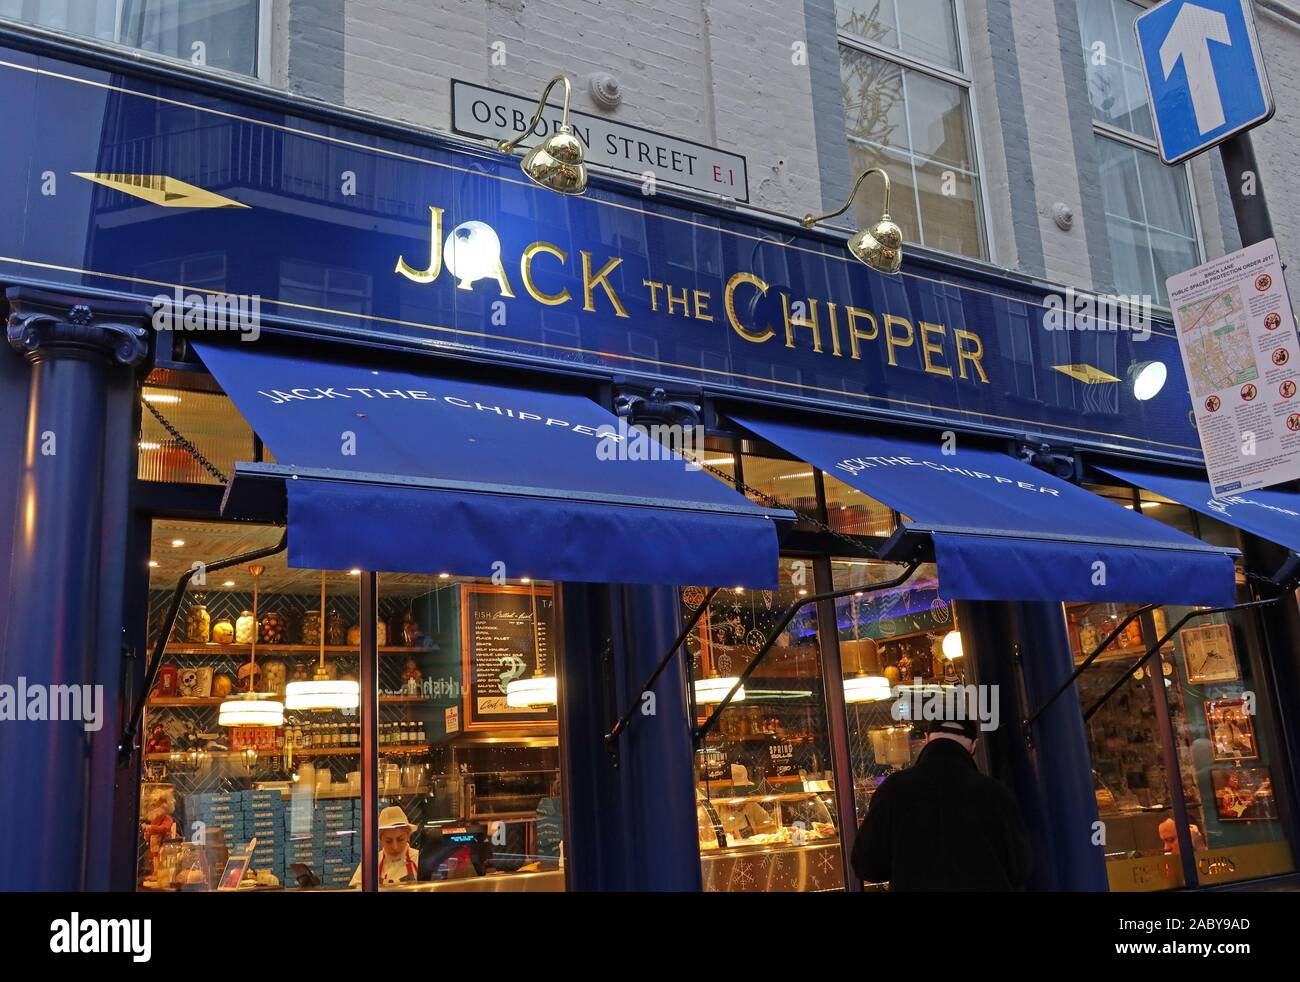 GoTonySmith,HotpixUK,@HotpixUK,England,English,South East,named,fish chips,fish and chips,humour,joke,Cockney,killer,famous,Whitechapel High St,Aldgate,Shadwell,London,UK,E1,Aldgate London,South East England,Whitechapel Murders,murders,theme,themed,Victorian,serial killer,building,chippie,chippy,Michael Papastavrou,themed Whitechapel Murders restaurant.,restaurant,tourist attraction,The Ripper,Whitechapel Ripper,victims